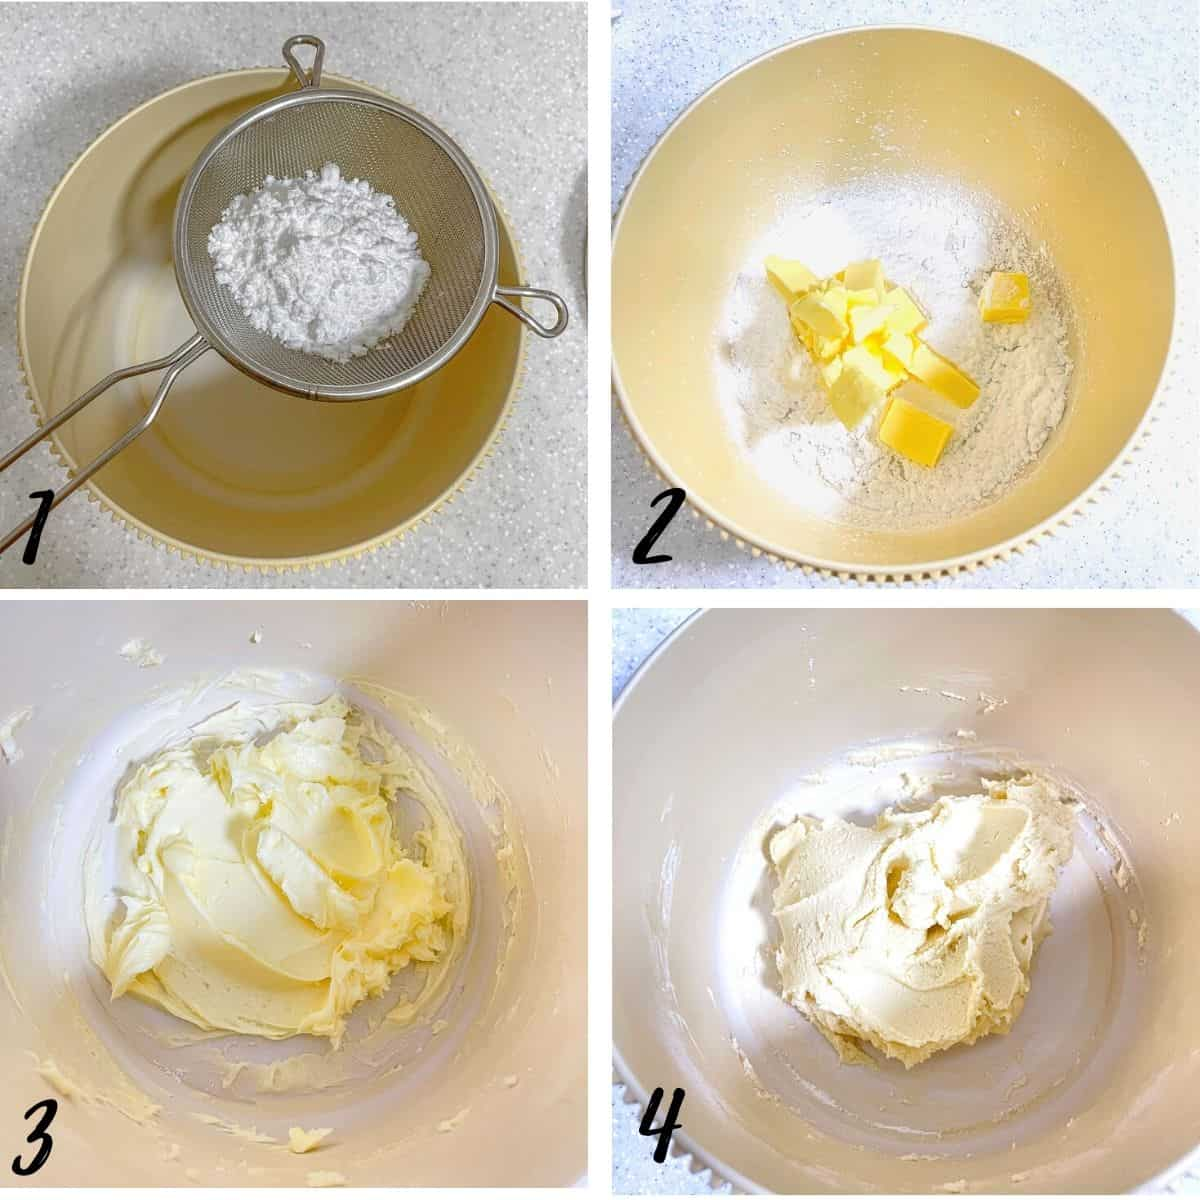 A poster of 4 images showing how to mix the 3 ingredient cookies dough